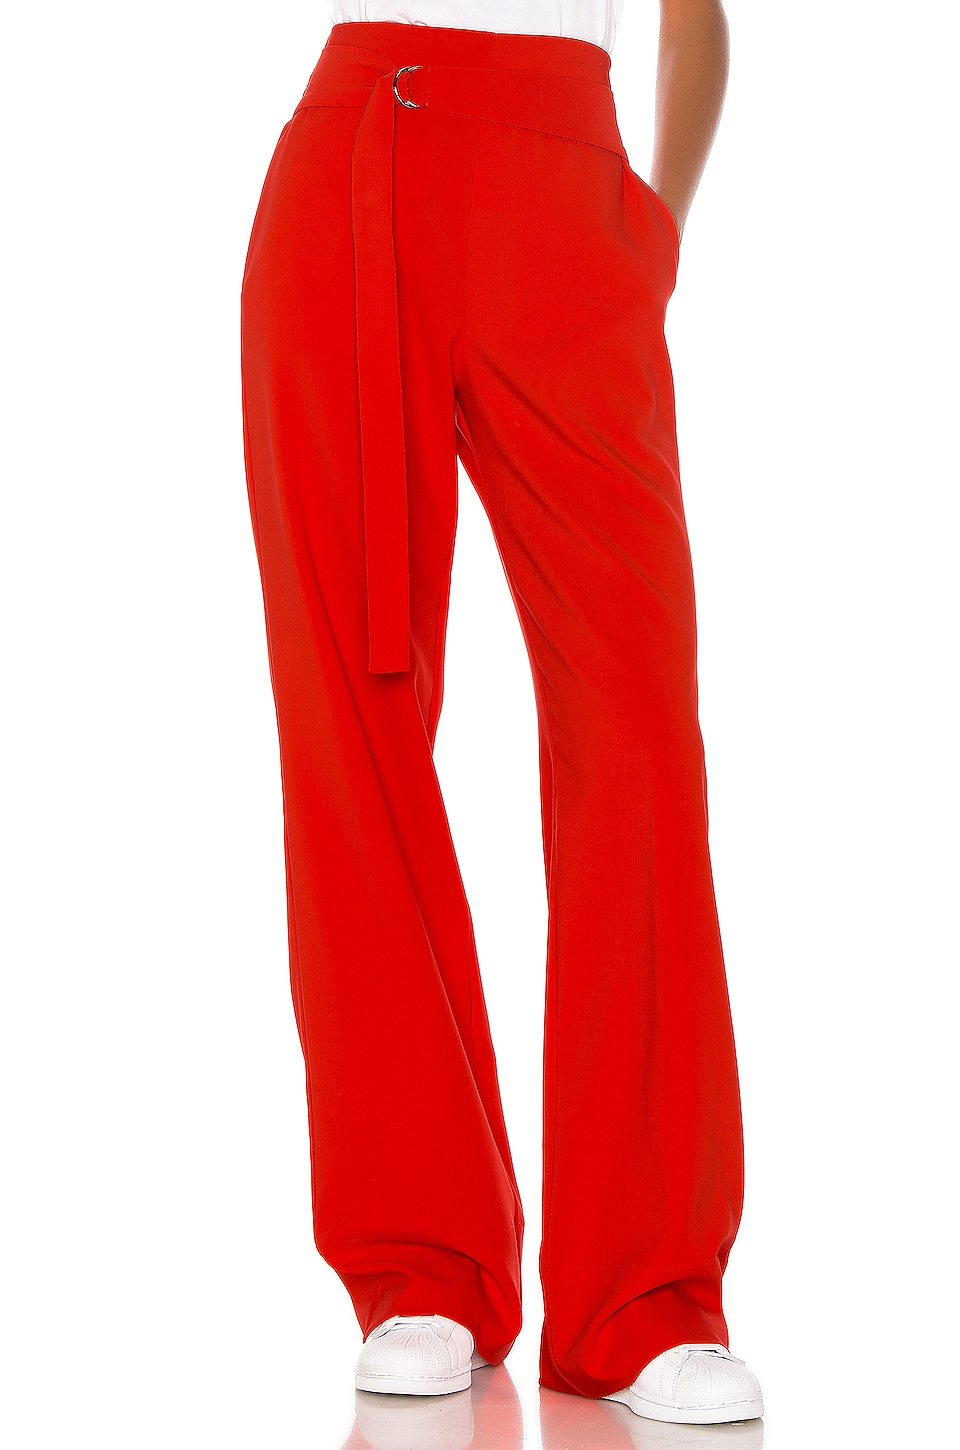 h:ours PANTALON TAILLE HAUTE LUCY